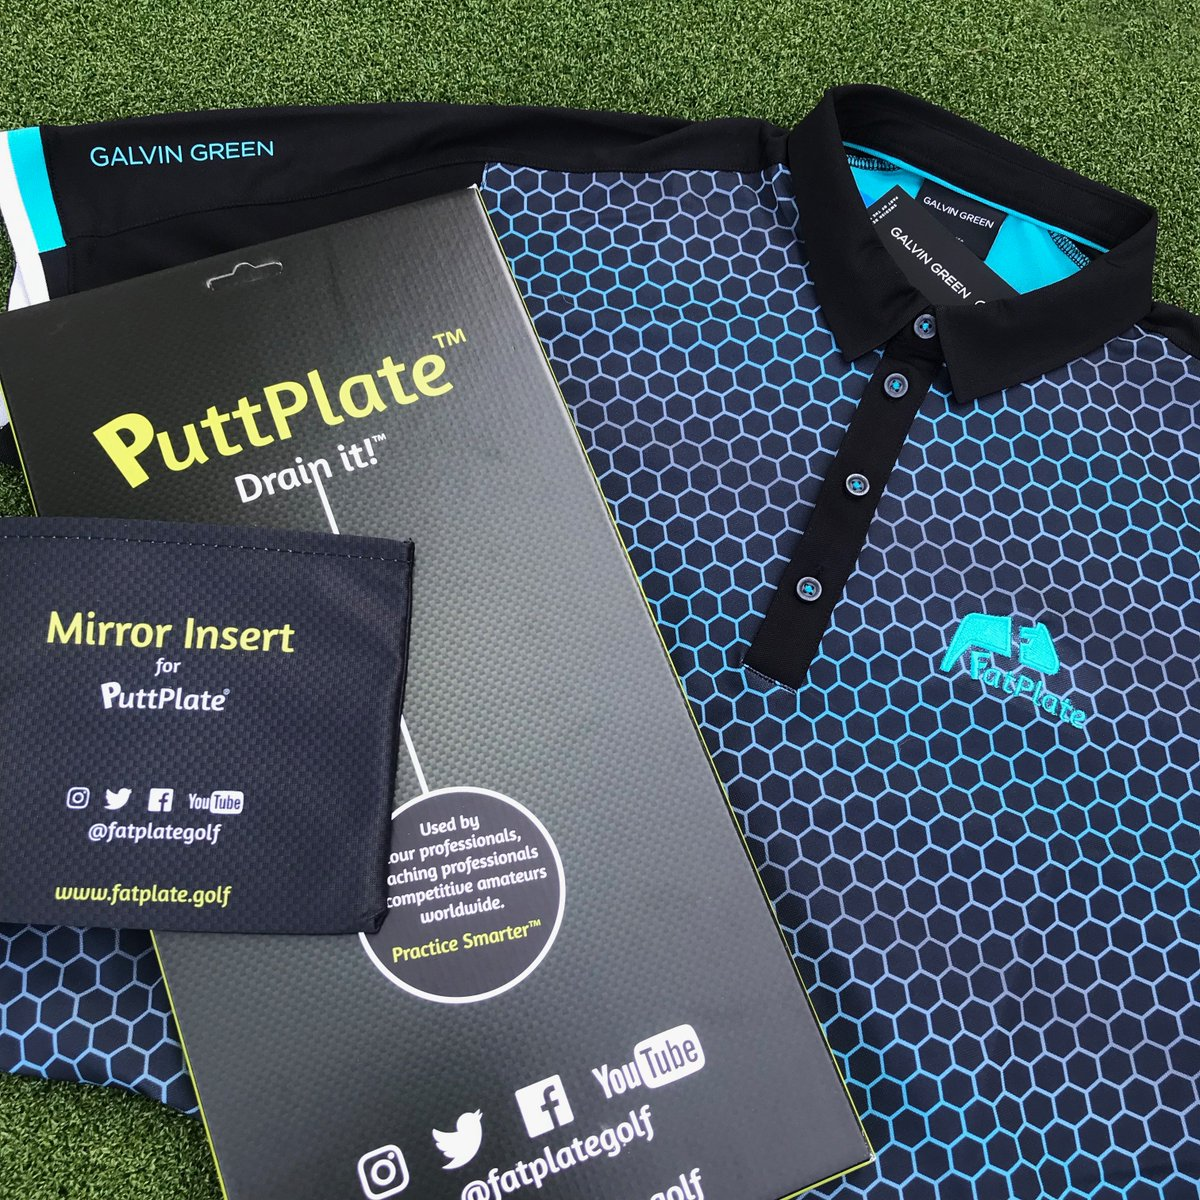 852eda80a ... logo PLUS a #PuttPlate with #MirrorInsert 1 Tell us your size 2 RT/Like  this post 3 Follow us & @galvingreen #galvingreen #myles #blackbluebird ...